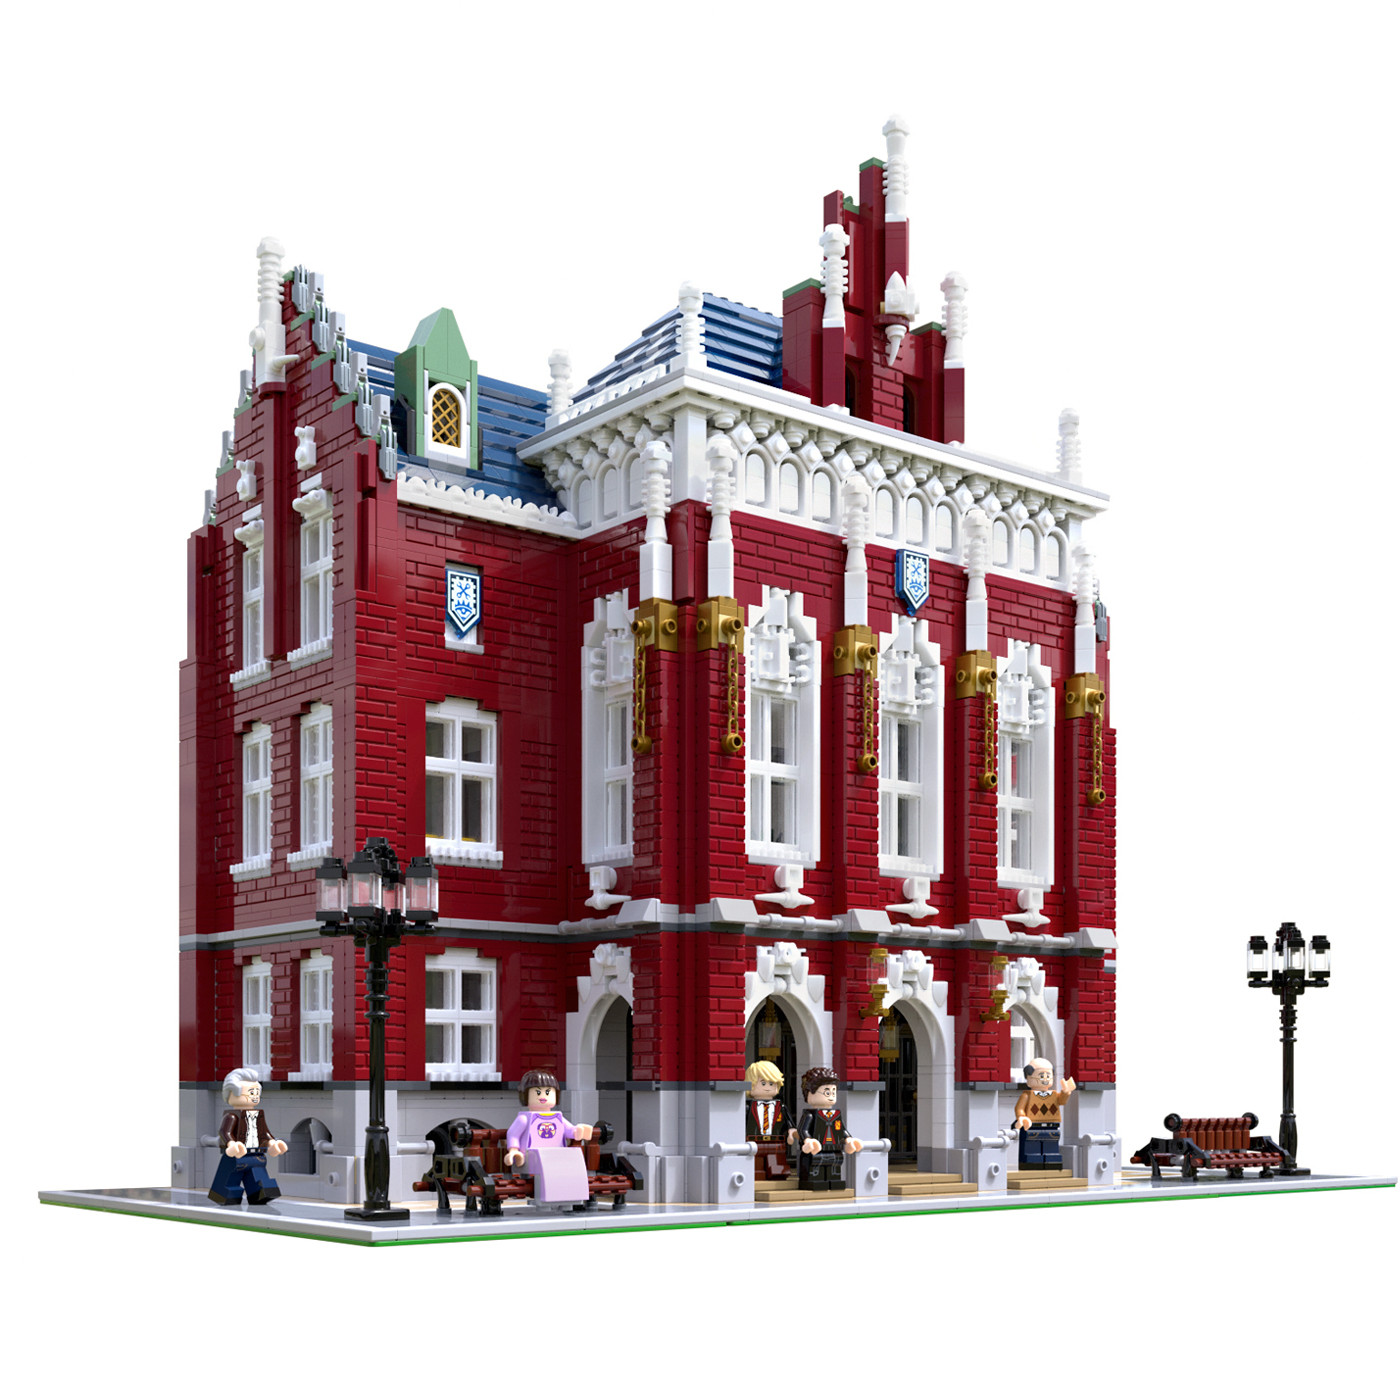 Moc City Streetview Series The Brickstive Havana Cafe Bike Shop University Post Model Modular Building Blocks Bricks Toys Gifts